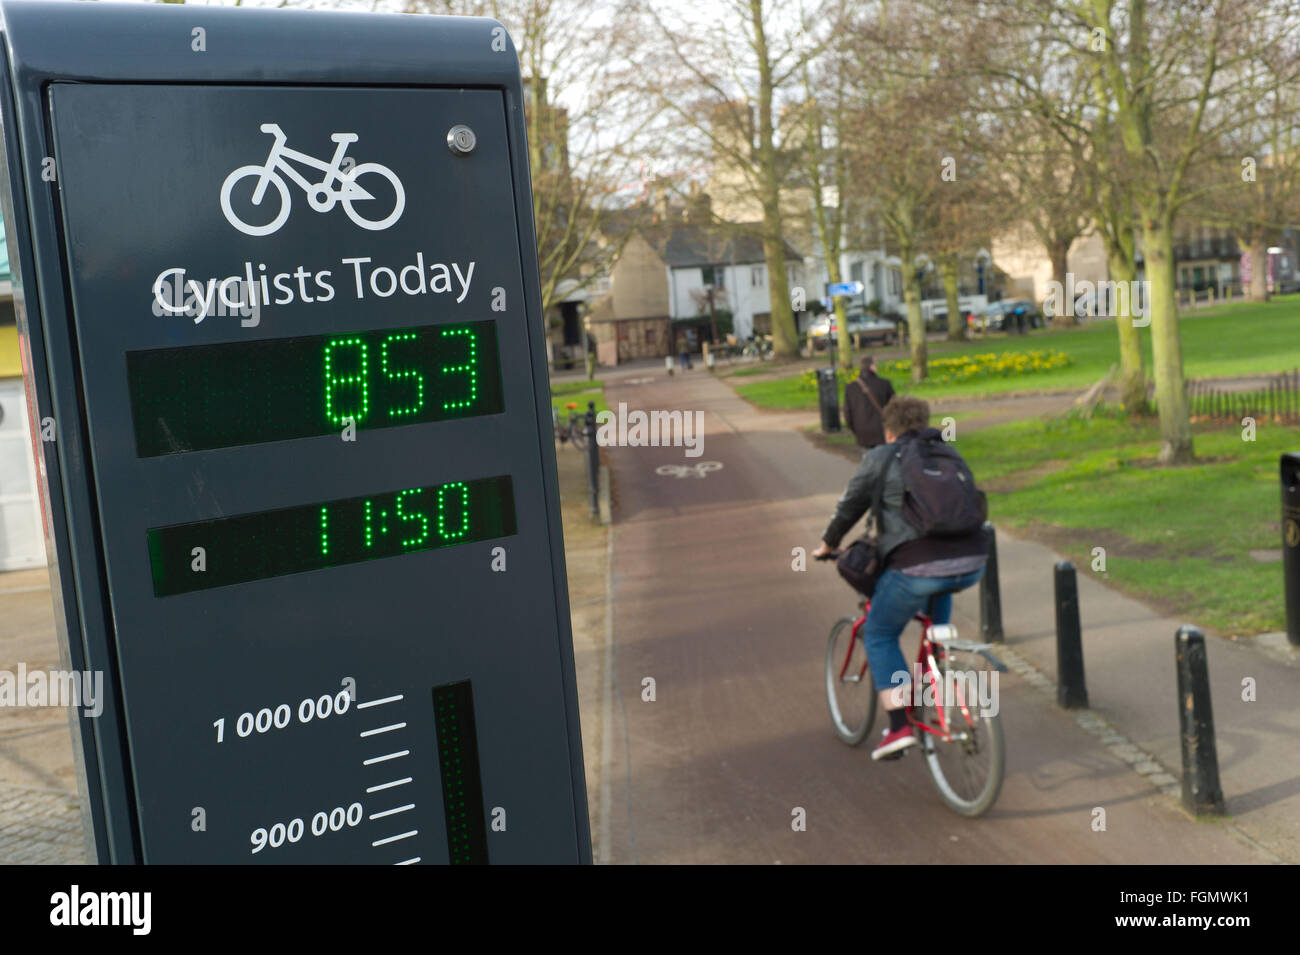 Cyclist passing a sign in Cambridge UK that shows the number of cyclists that have used the cycle track that day - Stock Image